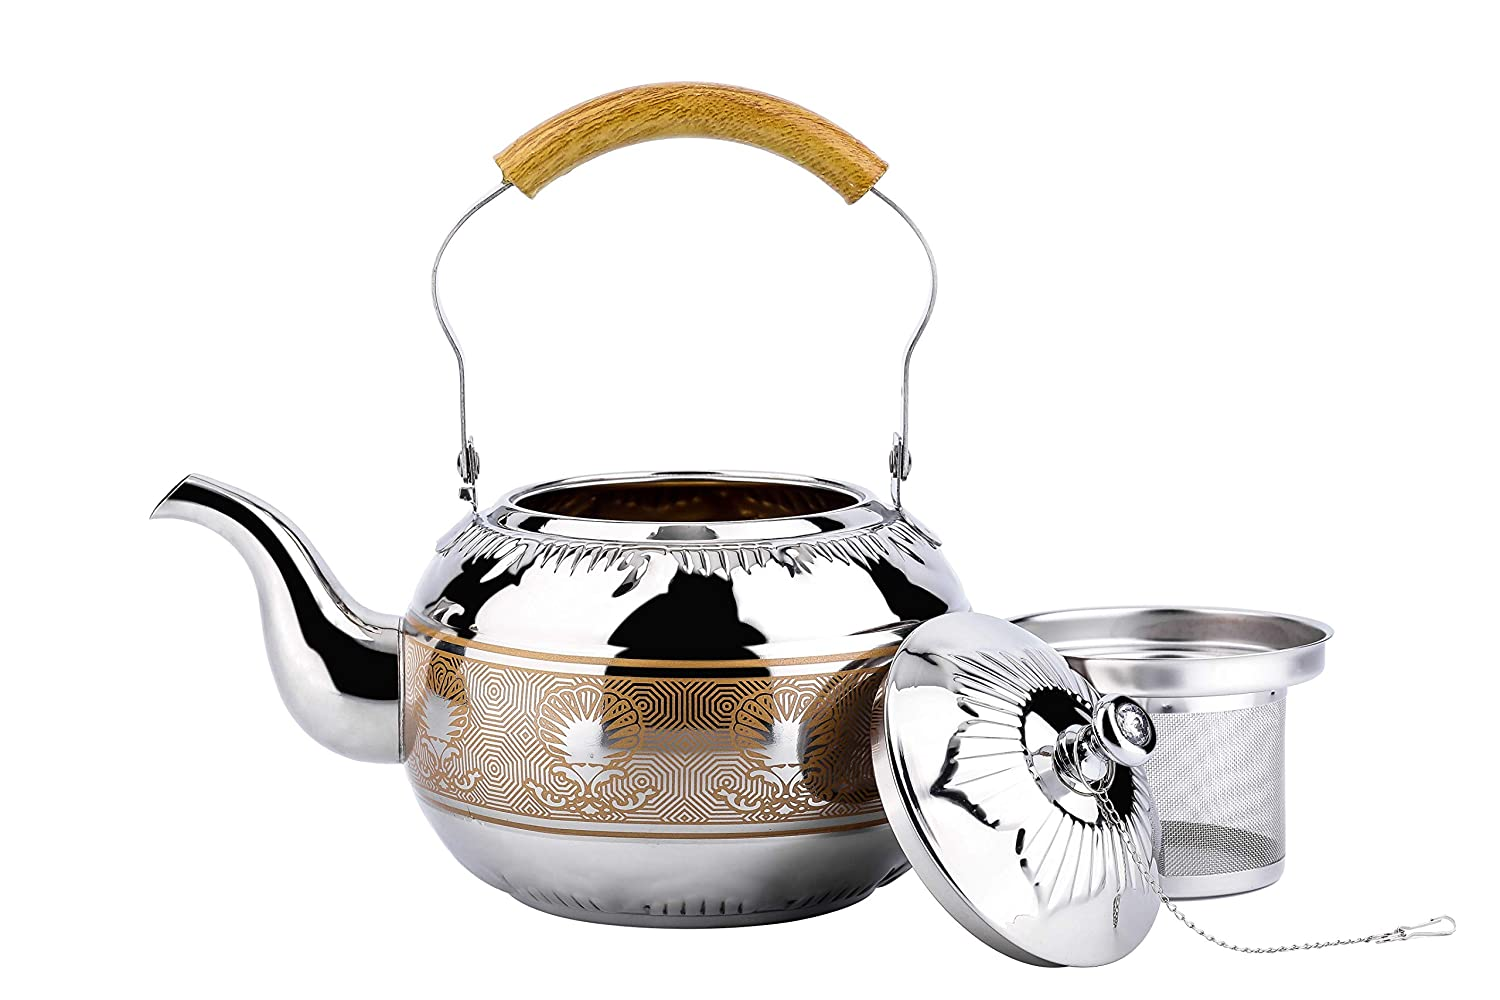 OMGard Whistling Tea Kettle with Infuser Loose Leaf Stainless Steel Teapot